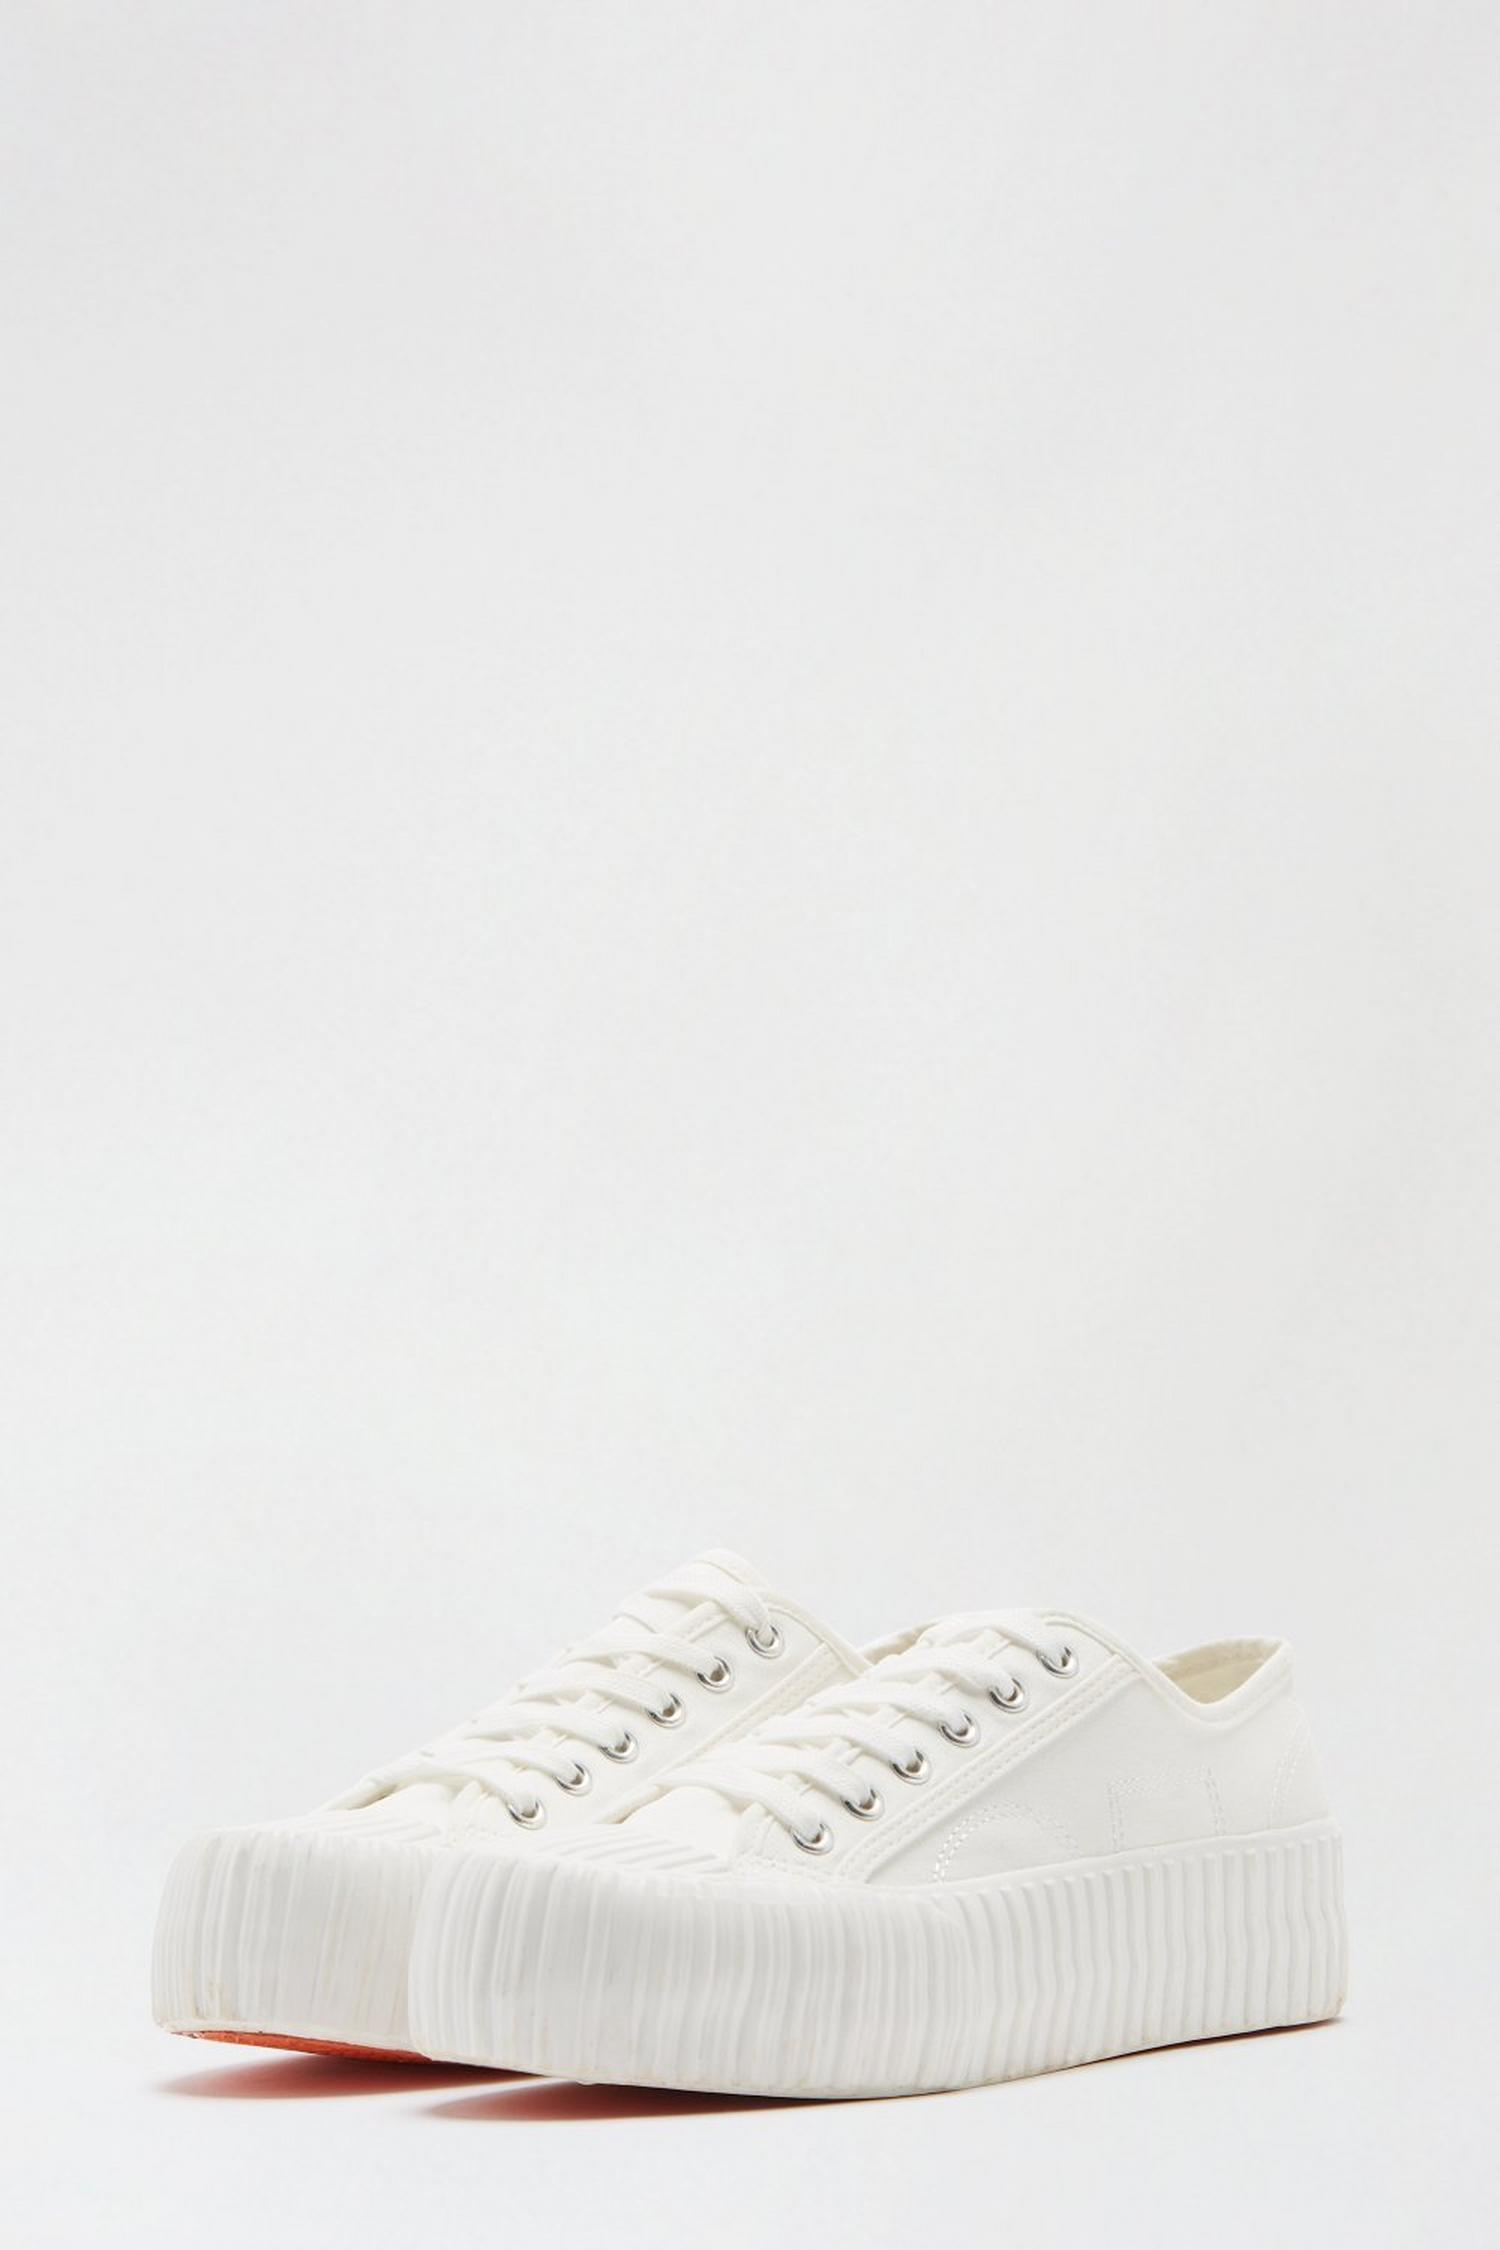 173 White Neptune Flatform Lace Up Trainer image number 2